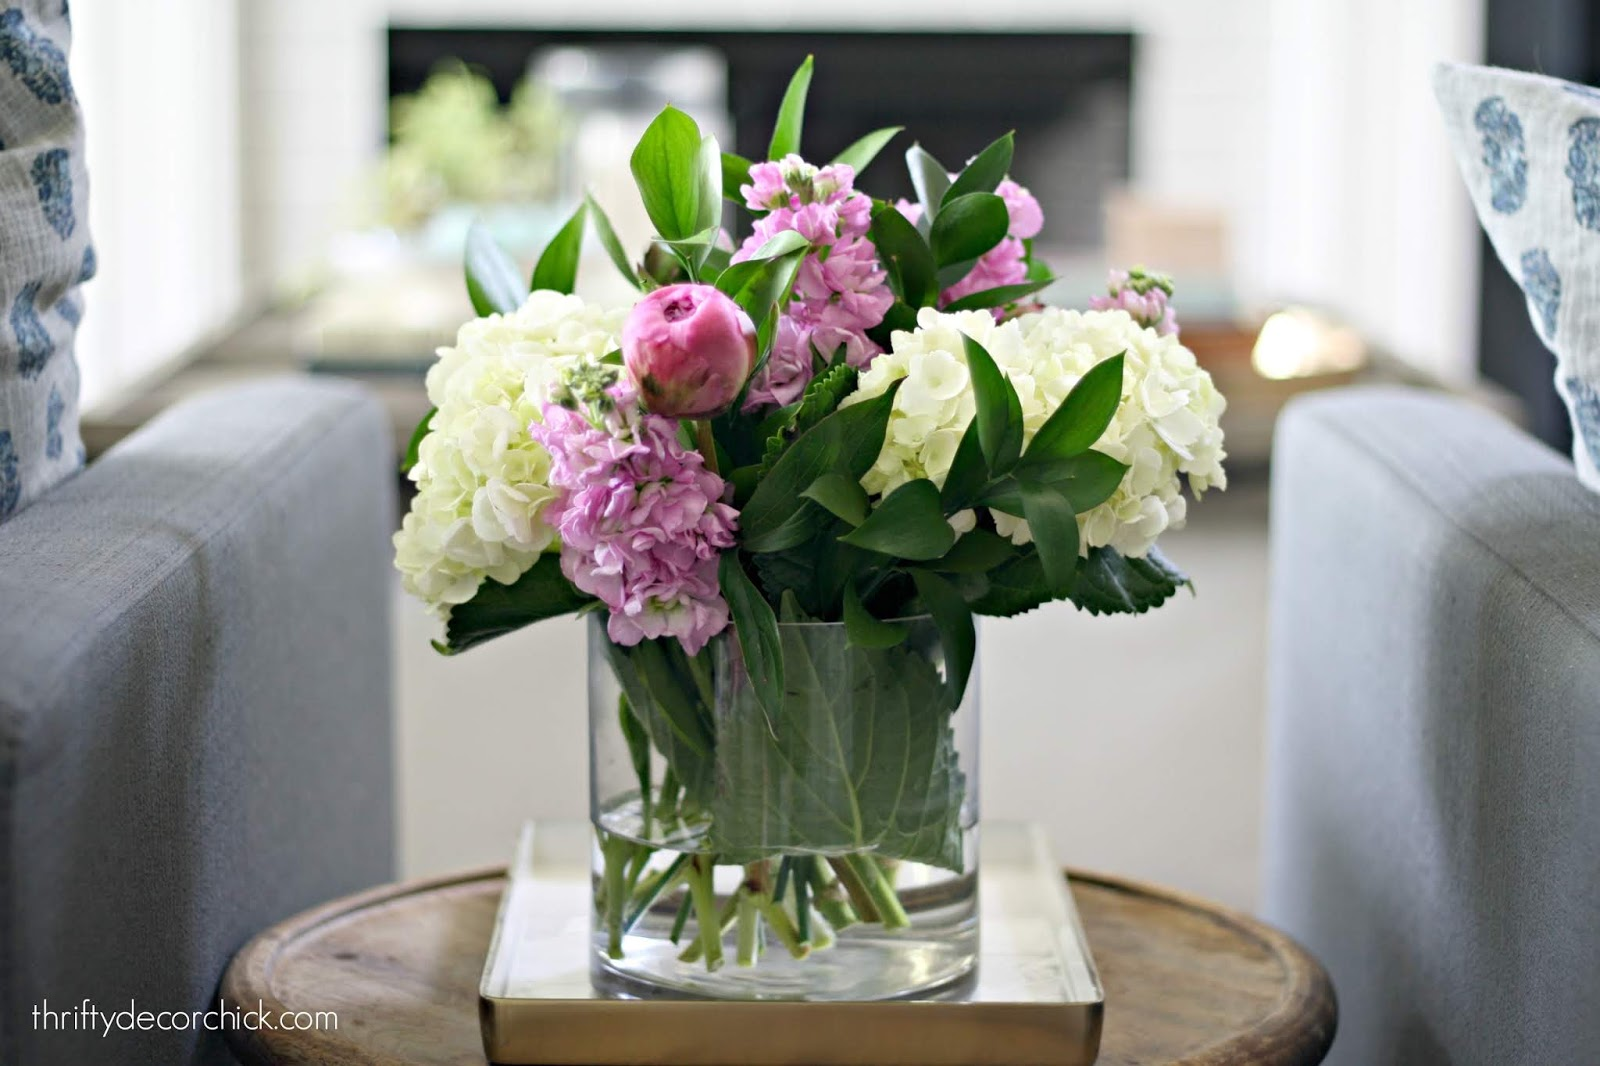 Easy Trader Joe's flower arrangement